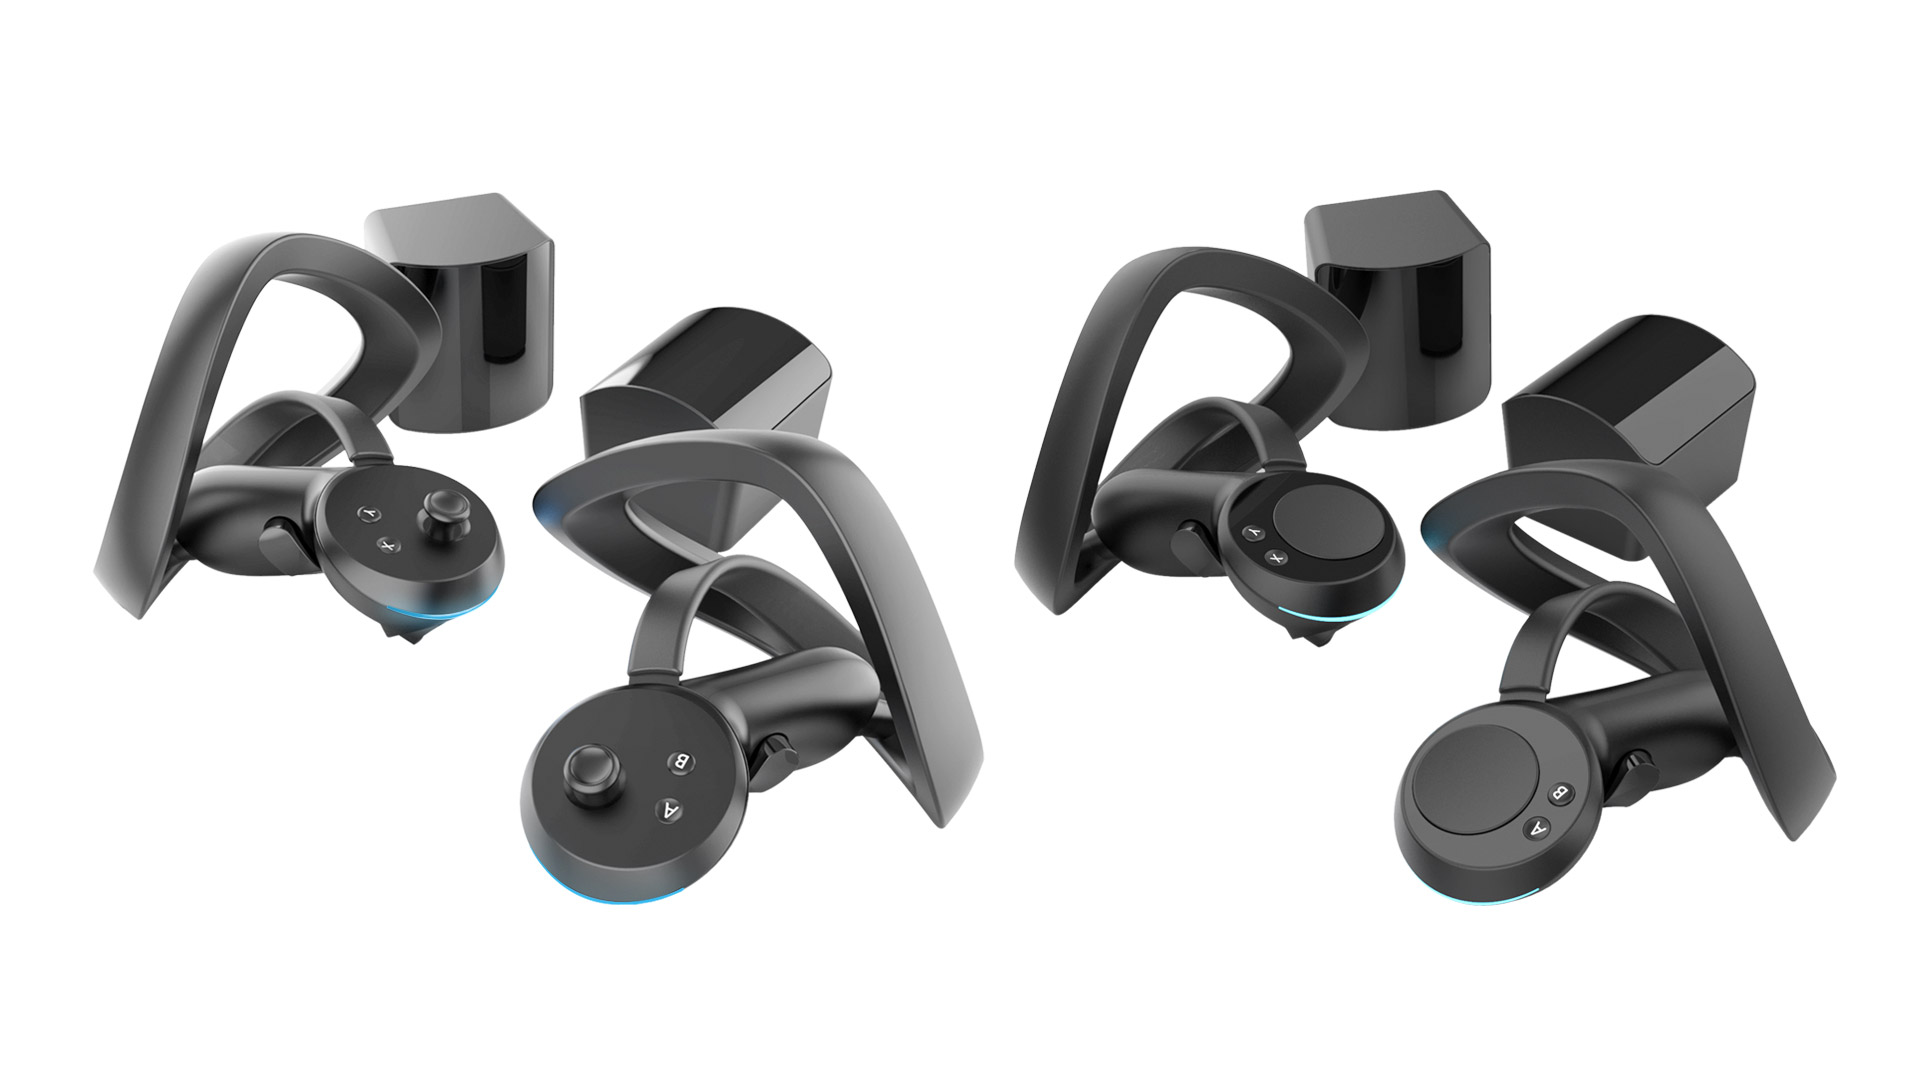 Pimax Details Upcoming Accessories – Price, Launch Date & More – Road to VR 5